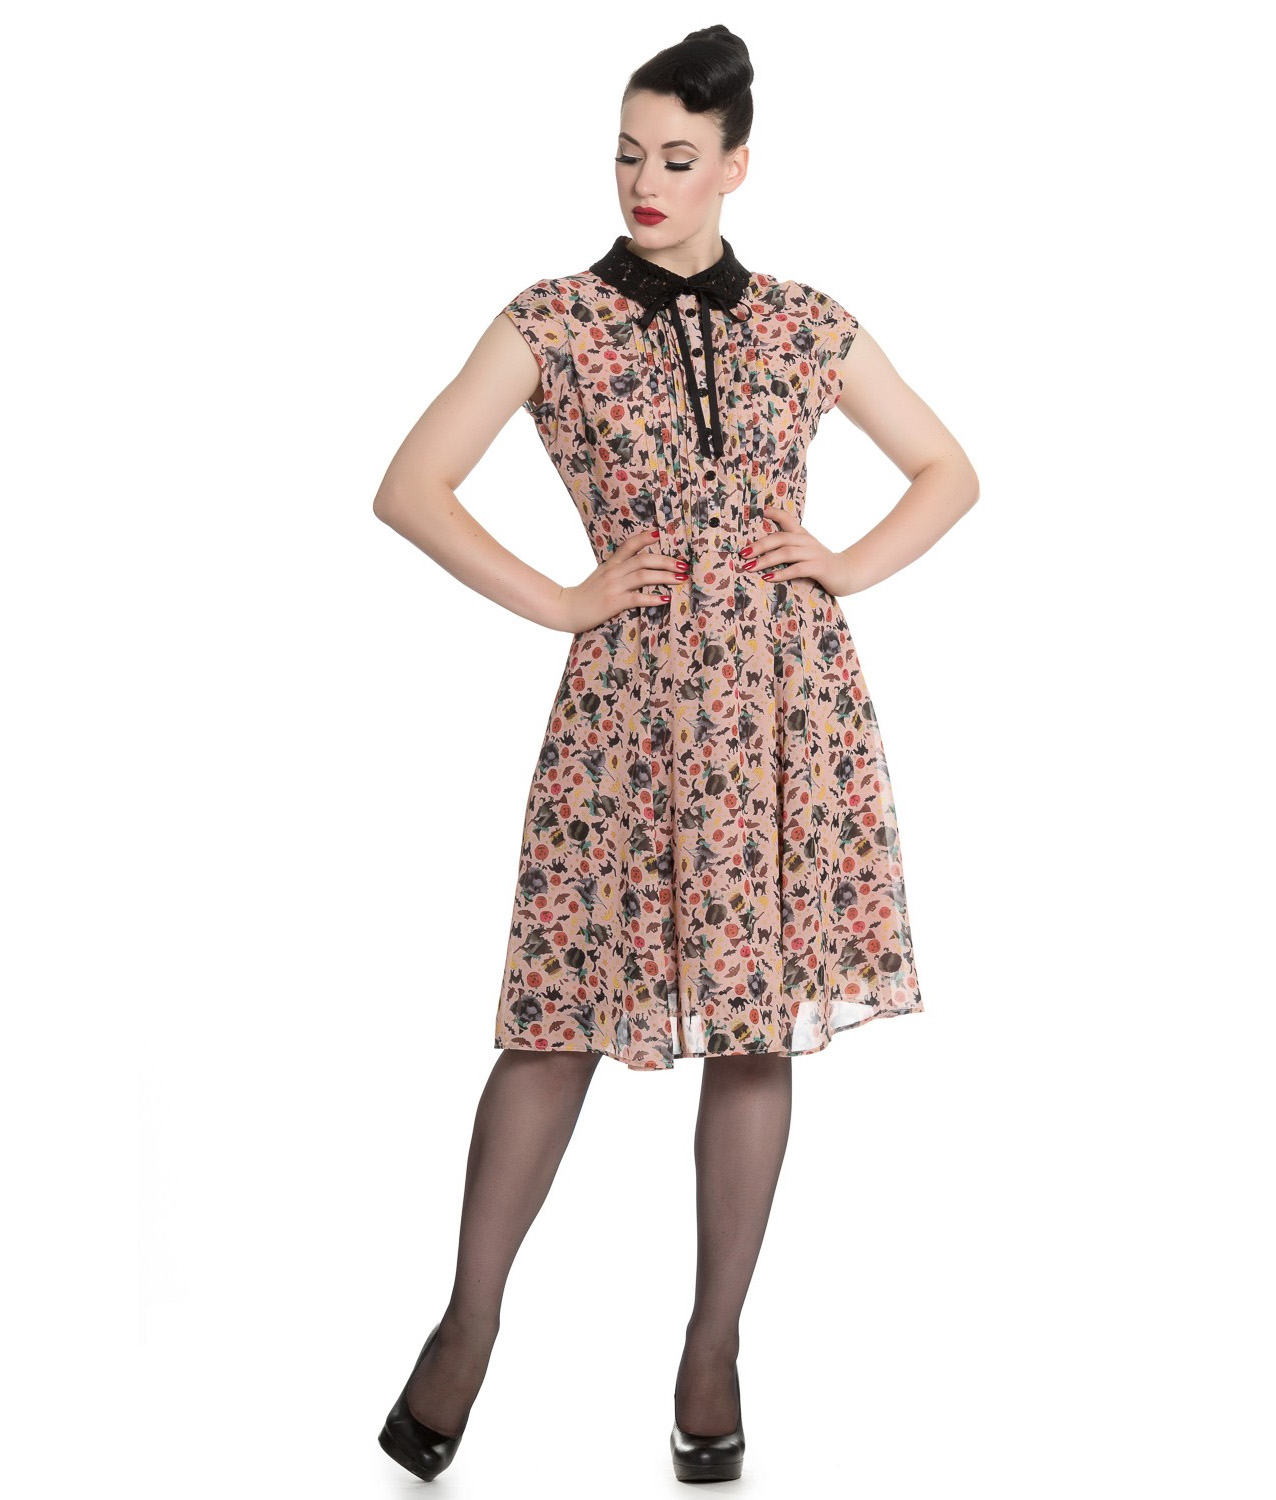 Hell-Bunny-Gothic-40s-50s-Beige-Dress-ZELDA-Witchy-Halloween-All-Sizes thumbnail 19